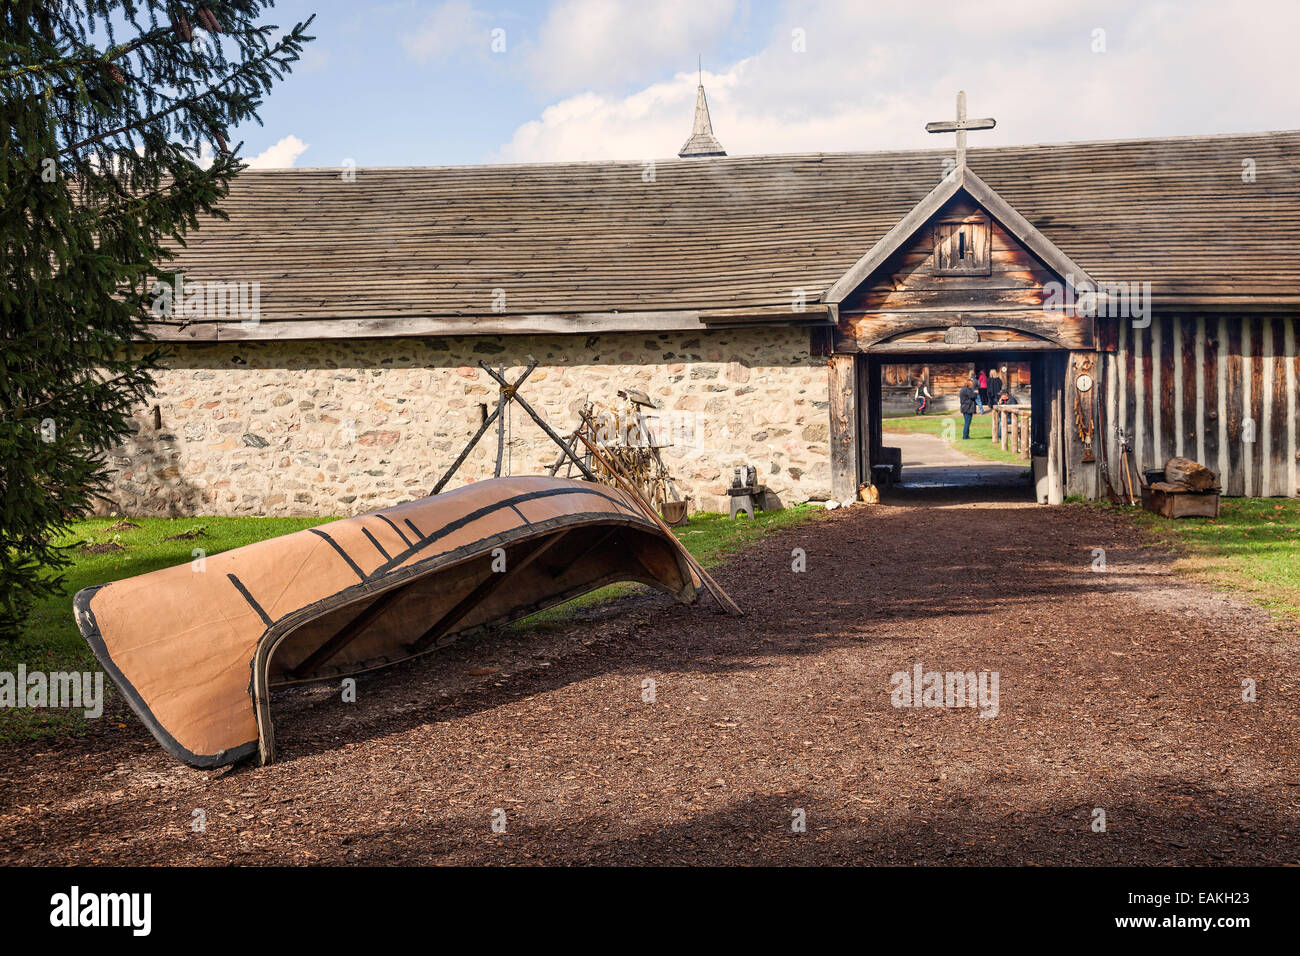 Sainte Marie among the Hurons;Original authentic Native American Indian Village in Midland;Ontario;Canada - Stock Image